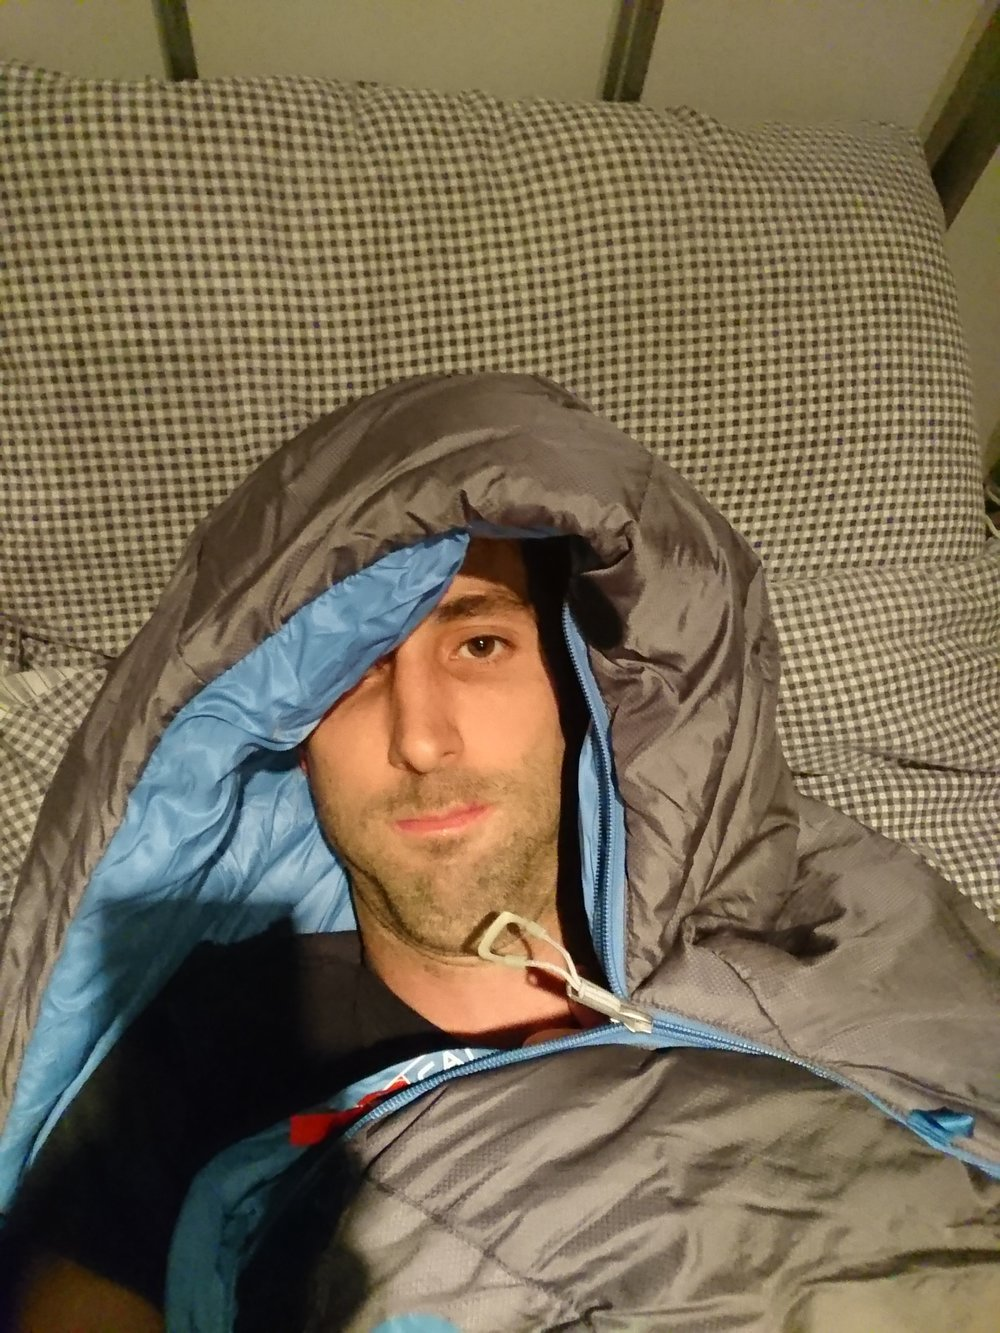 Sleeping bag selfie